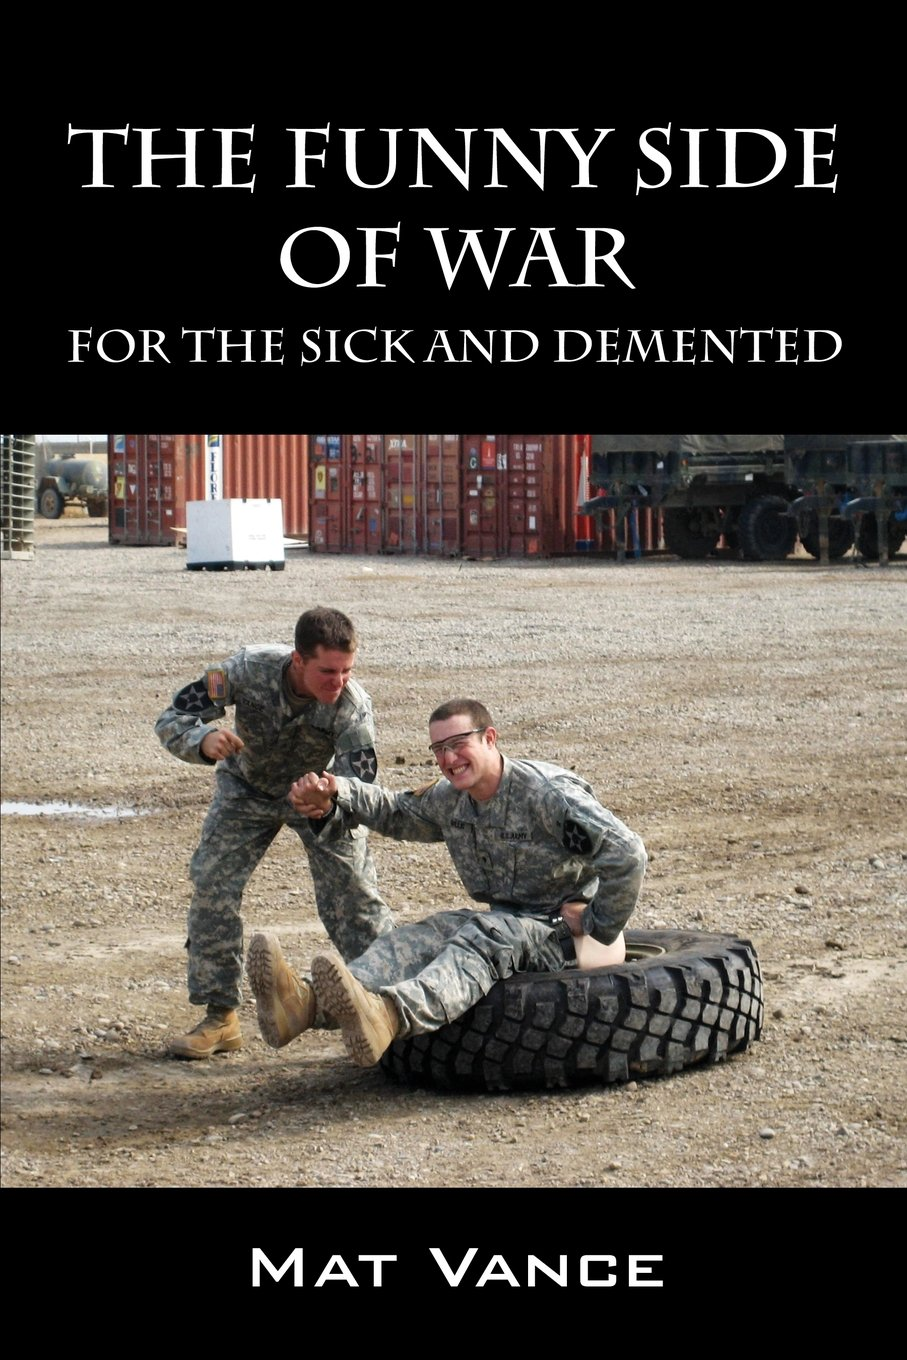 THE FUNNY SIDE OF WAR - $14.00